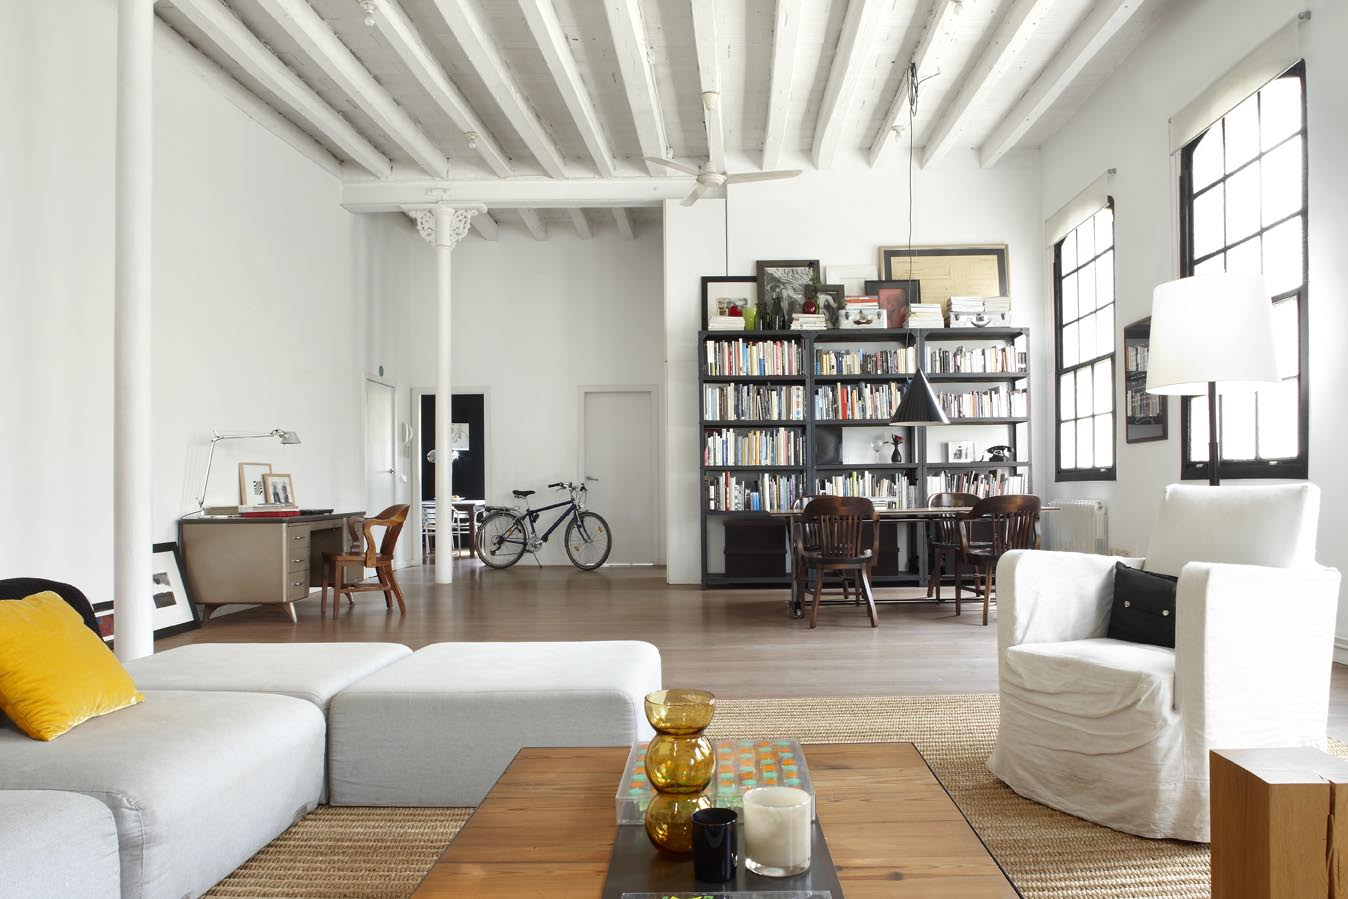 New York Style Loft in Barcelona by Shoot 115 3  HomeDSGN